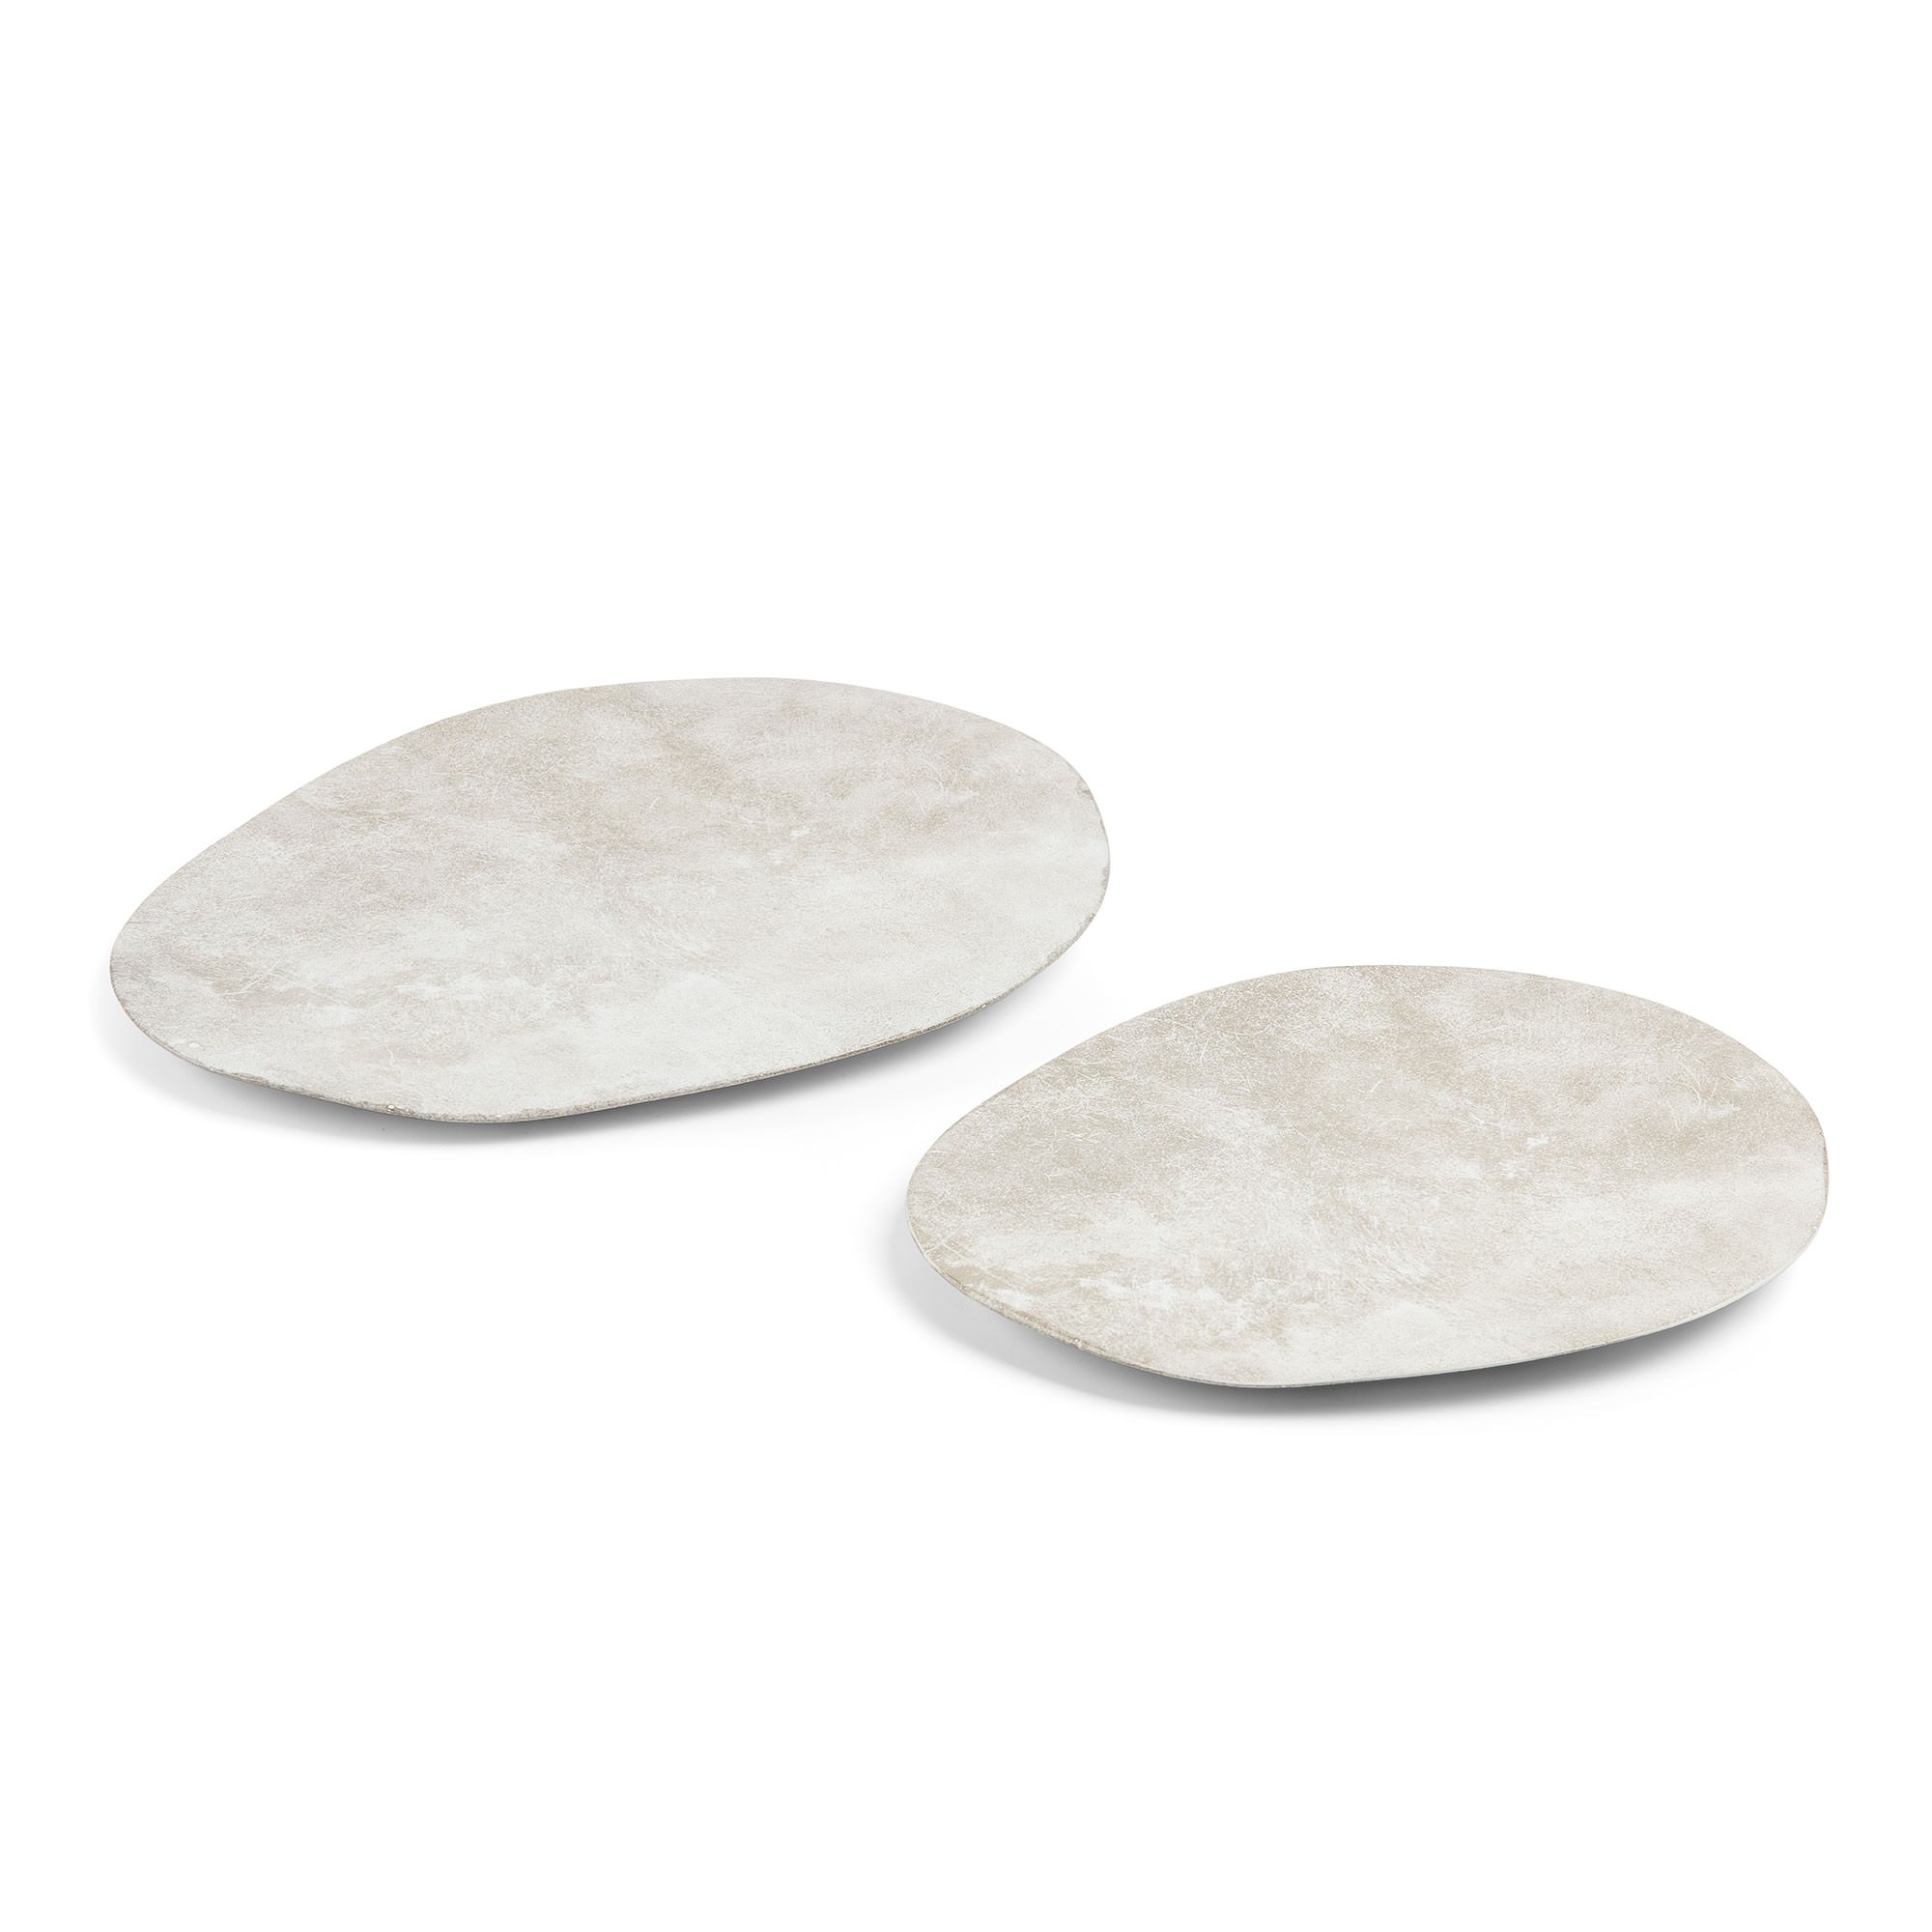 Maloney 2 Piece Ceramic Pepple Plate, Stone